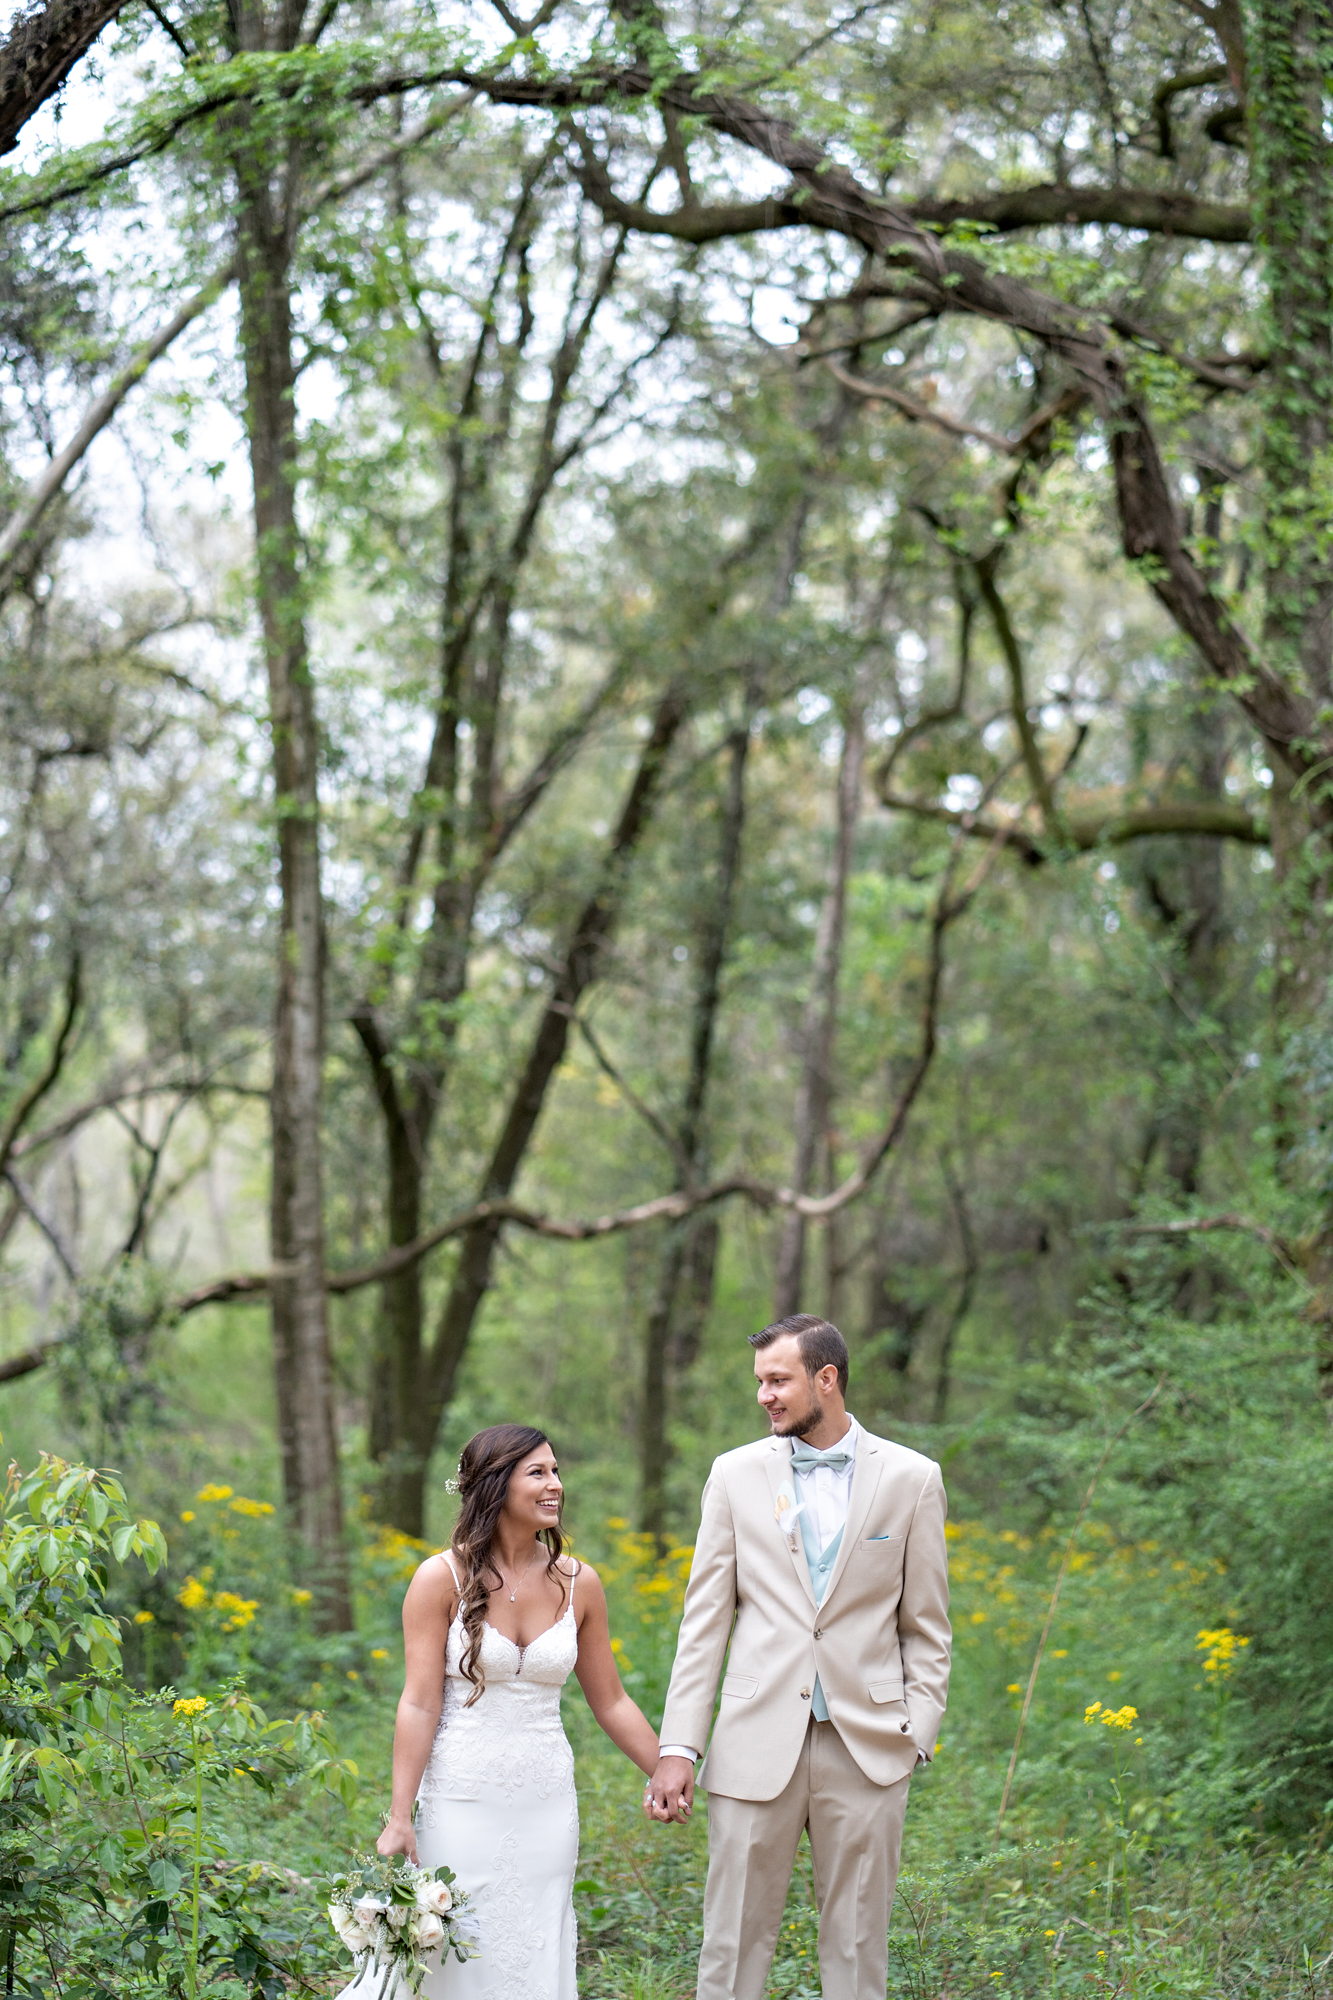 Fairhope-Alabama-Wedding-Photographers-Nick-Drollette-Photography-146.jpg